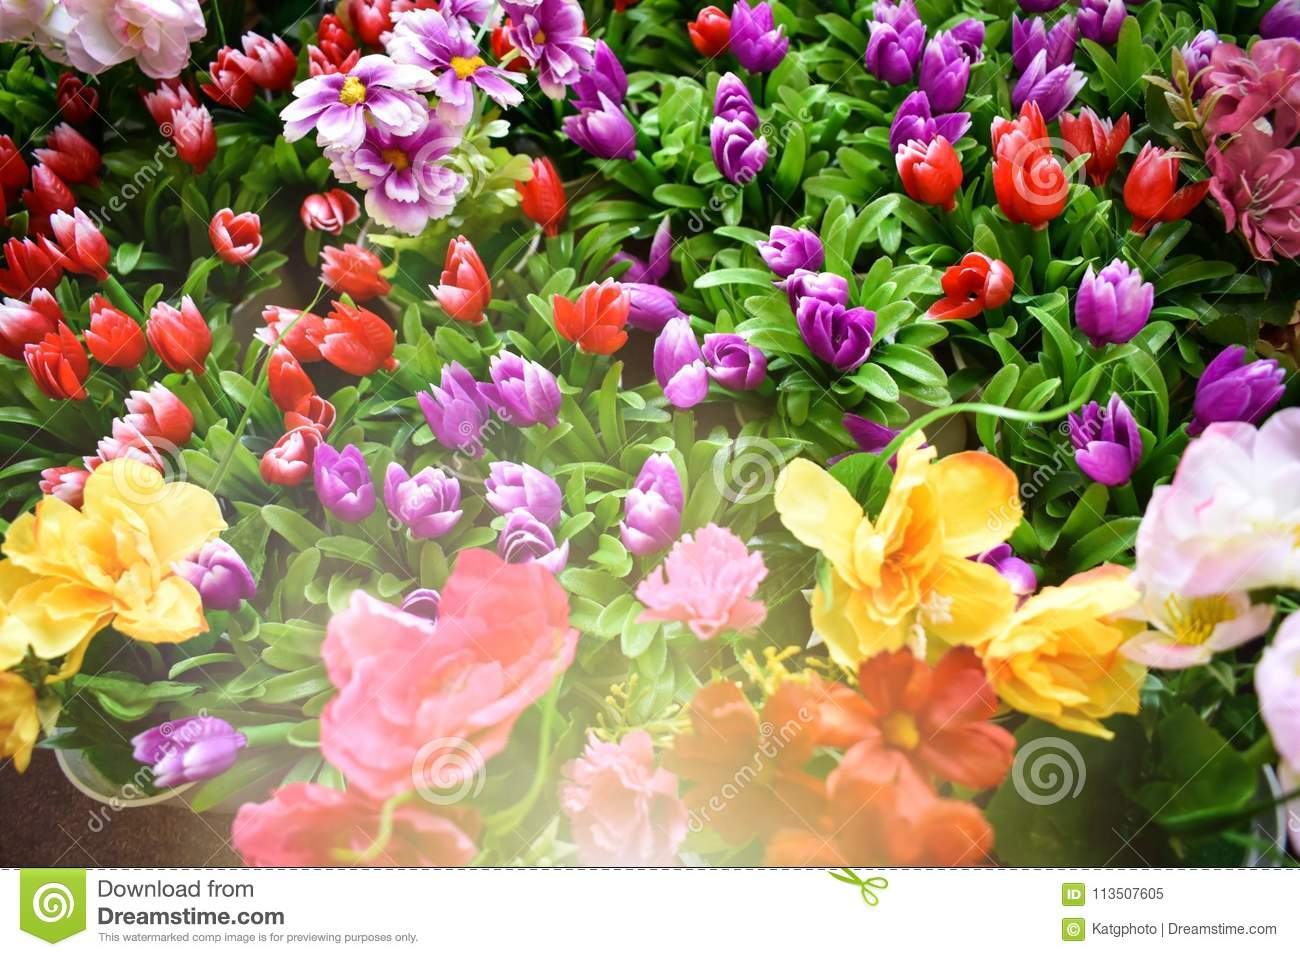 Large Group Spring Flowers Together With Bright Sunlight Shining On